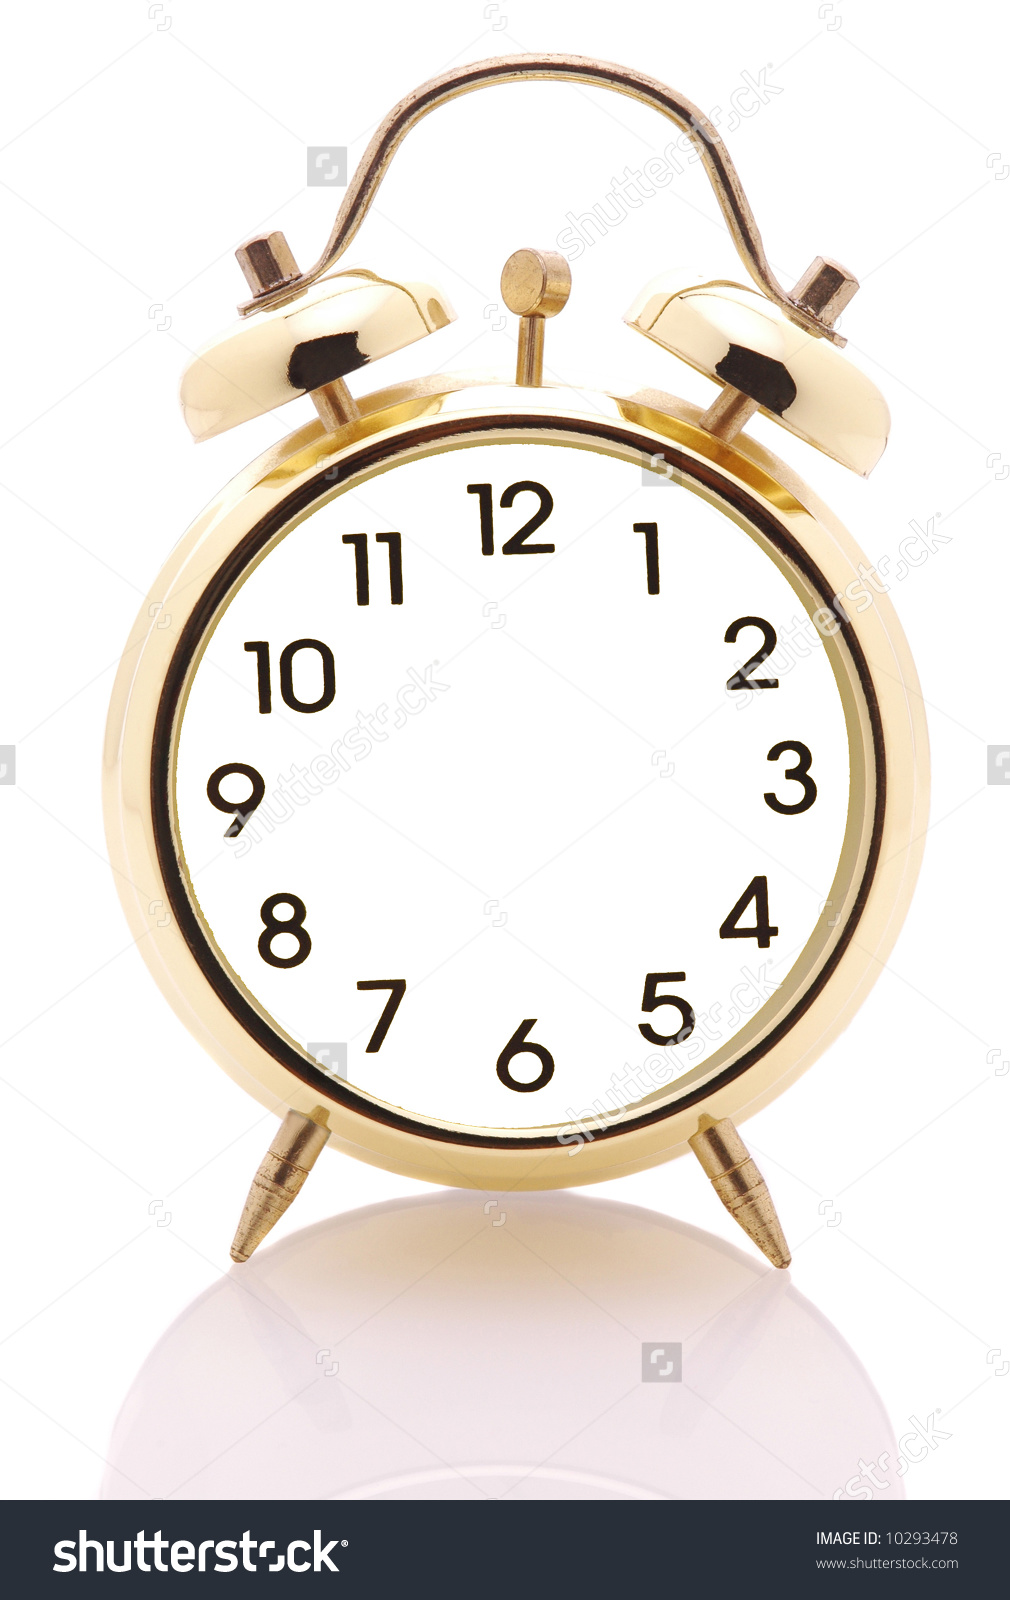 Clock with no hands clipart jpg transparent library Alarm Clock No Hands Isolated Over Stock Photo 10293478 - Shutterstock jpg transparent library